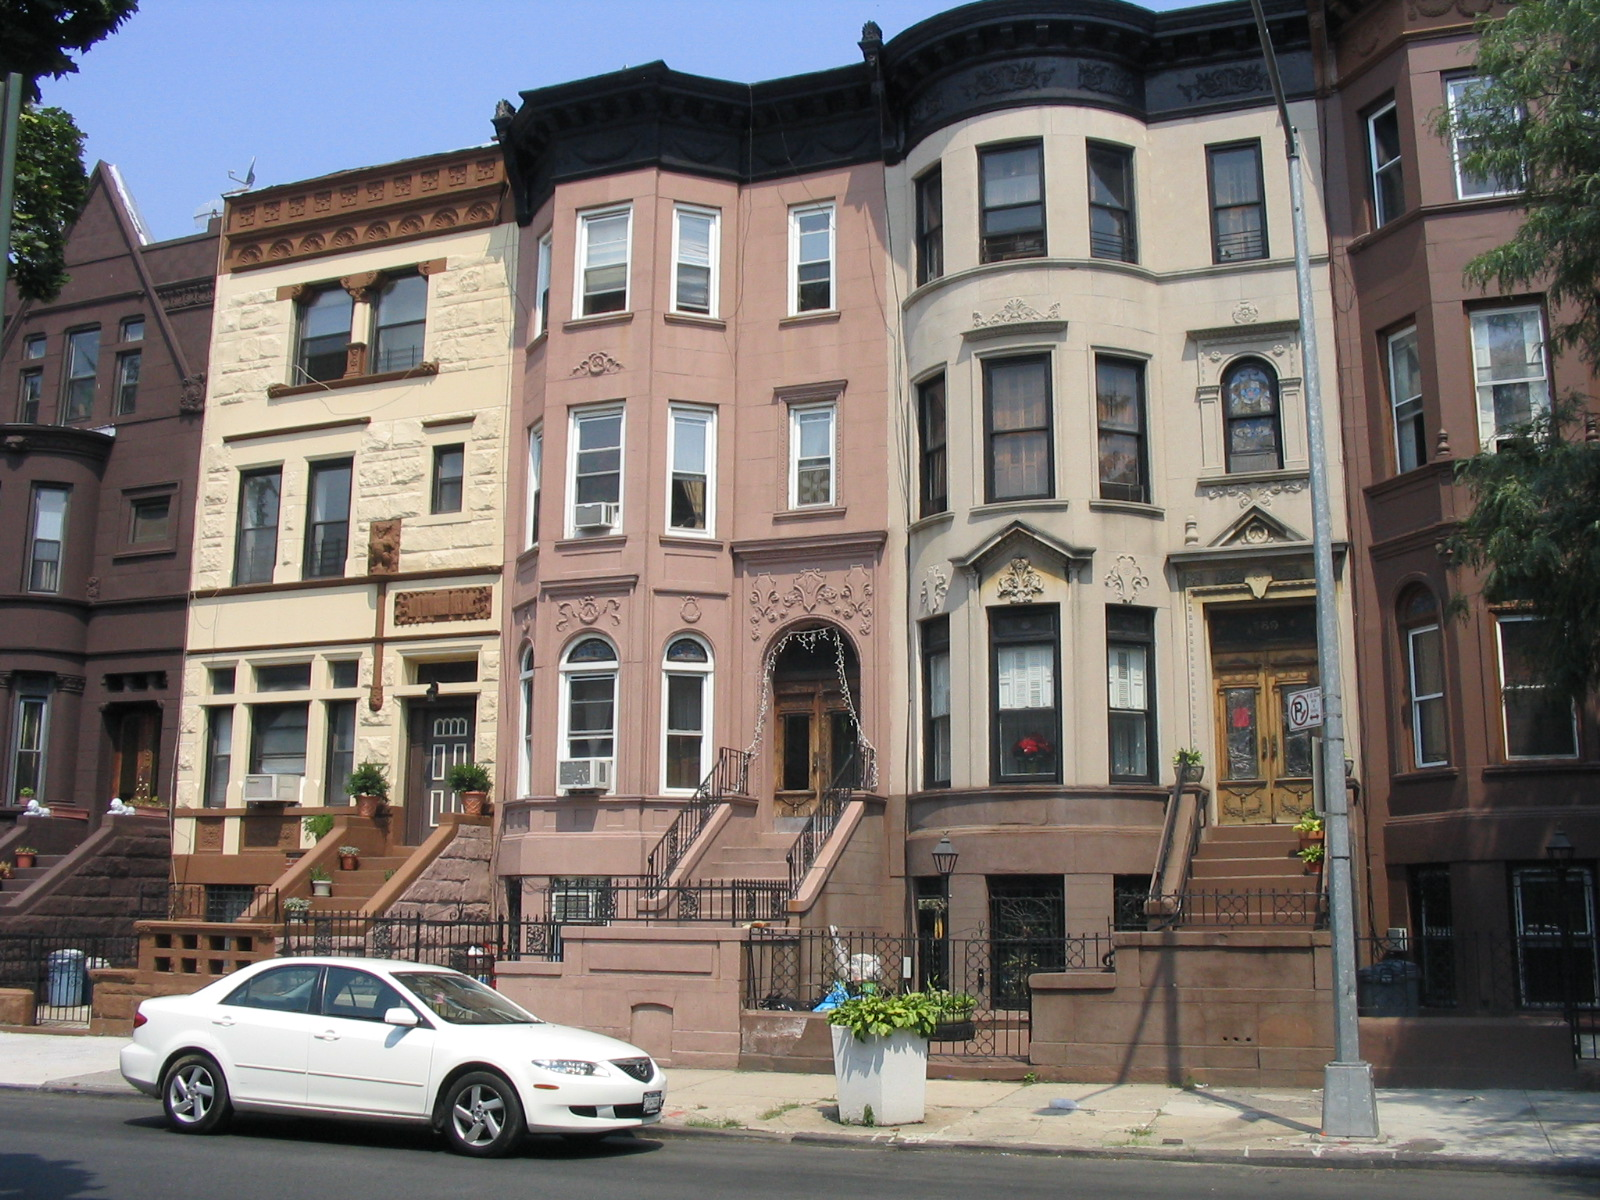 FileBedstuybrownstone1jpg Wikimedia Commons